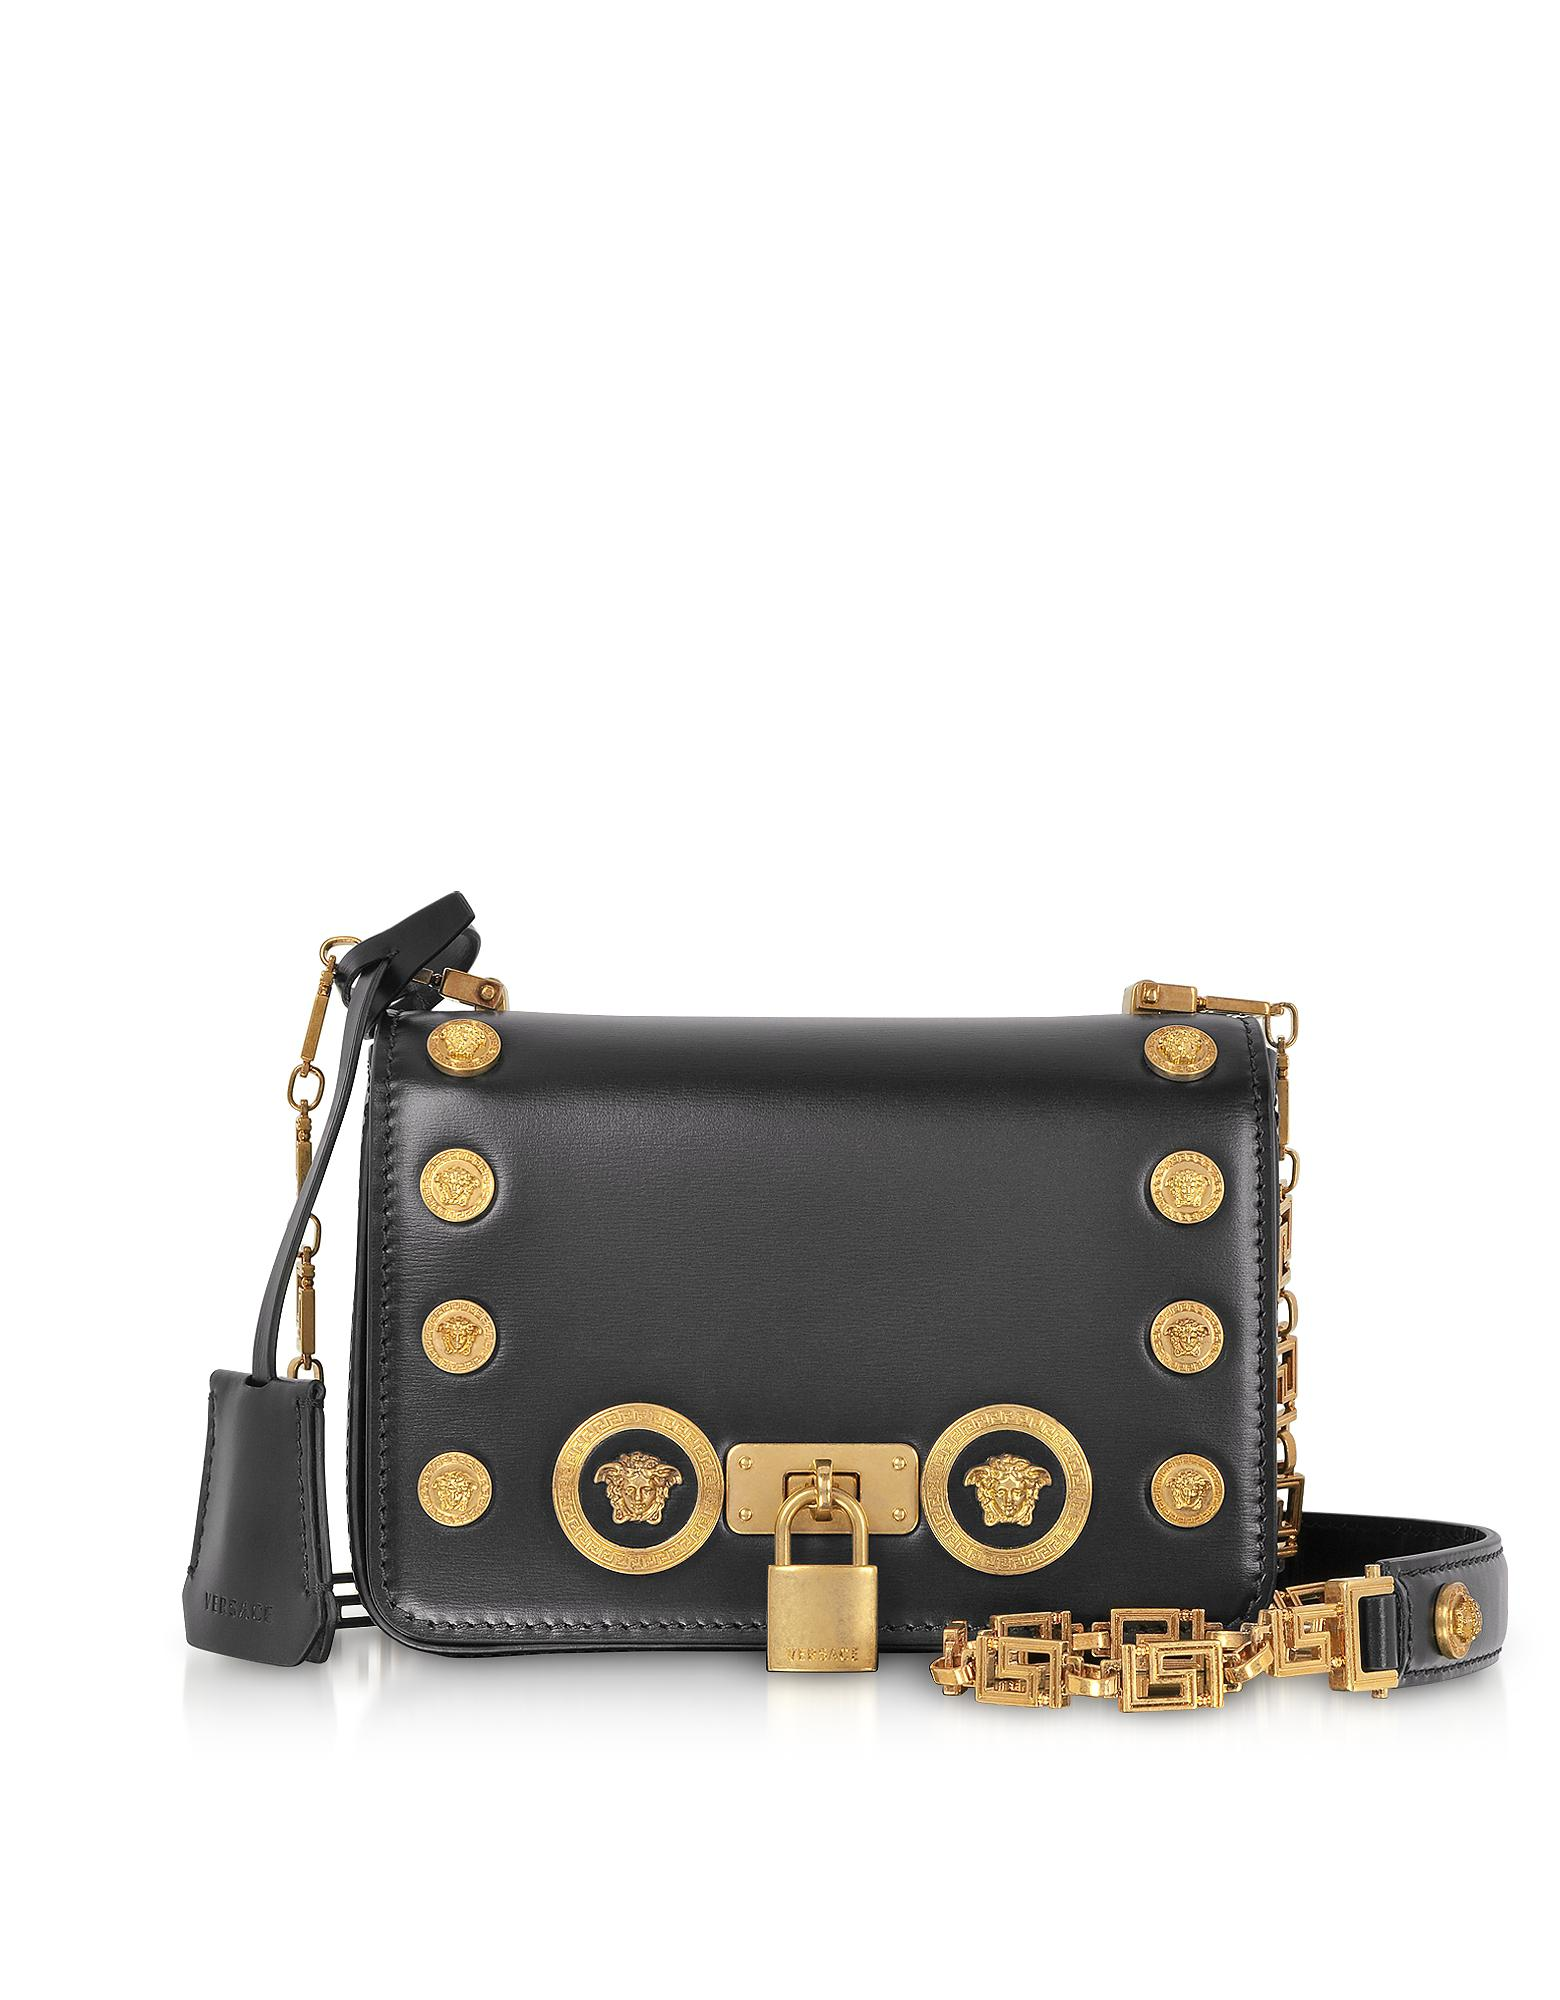 Lyst - Versace Small Icon Shoulder Bag in Black - Save 56% 01f101b45ccf6